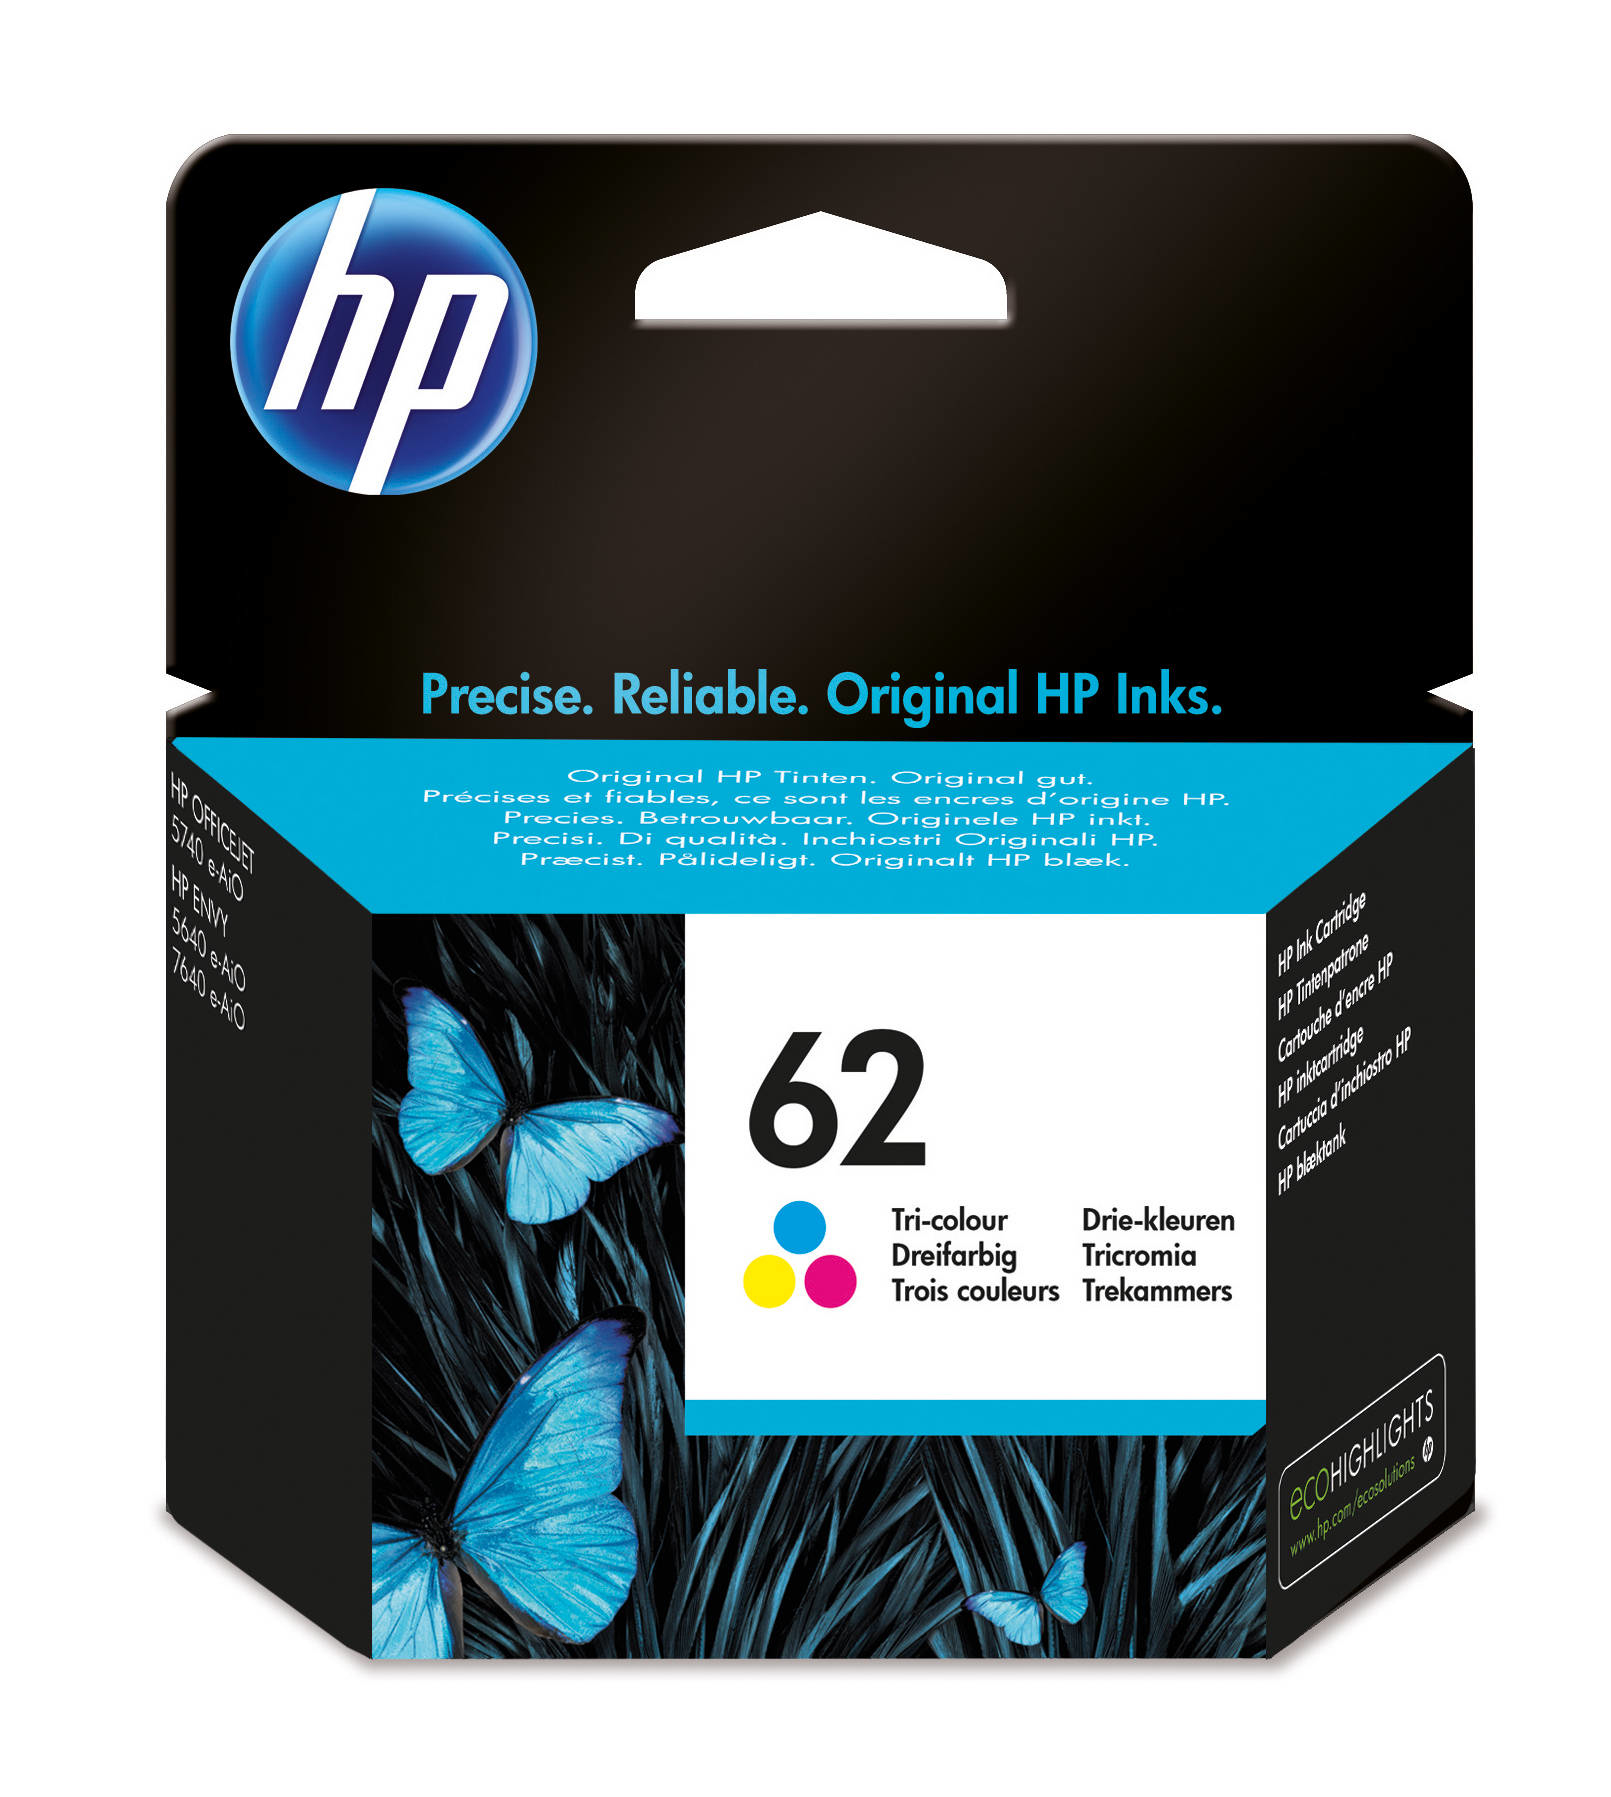 HP 62 - C2P06AE - Tricolour Tricolour- - Ink Cartridge - For Envy 5640, 5644, 5646, 5660, 7640, Officejet 5740, 5742, 8040 With Neat C2P06AE#UUS - C2000